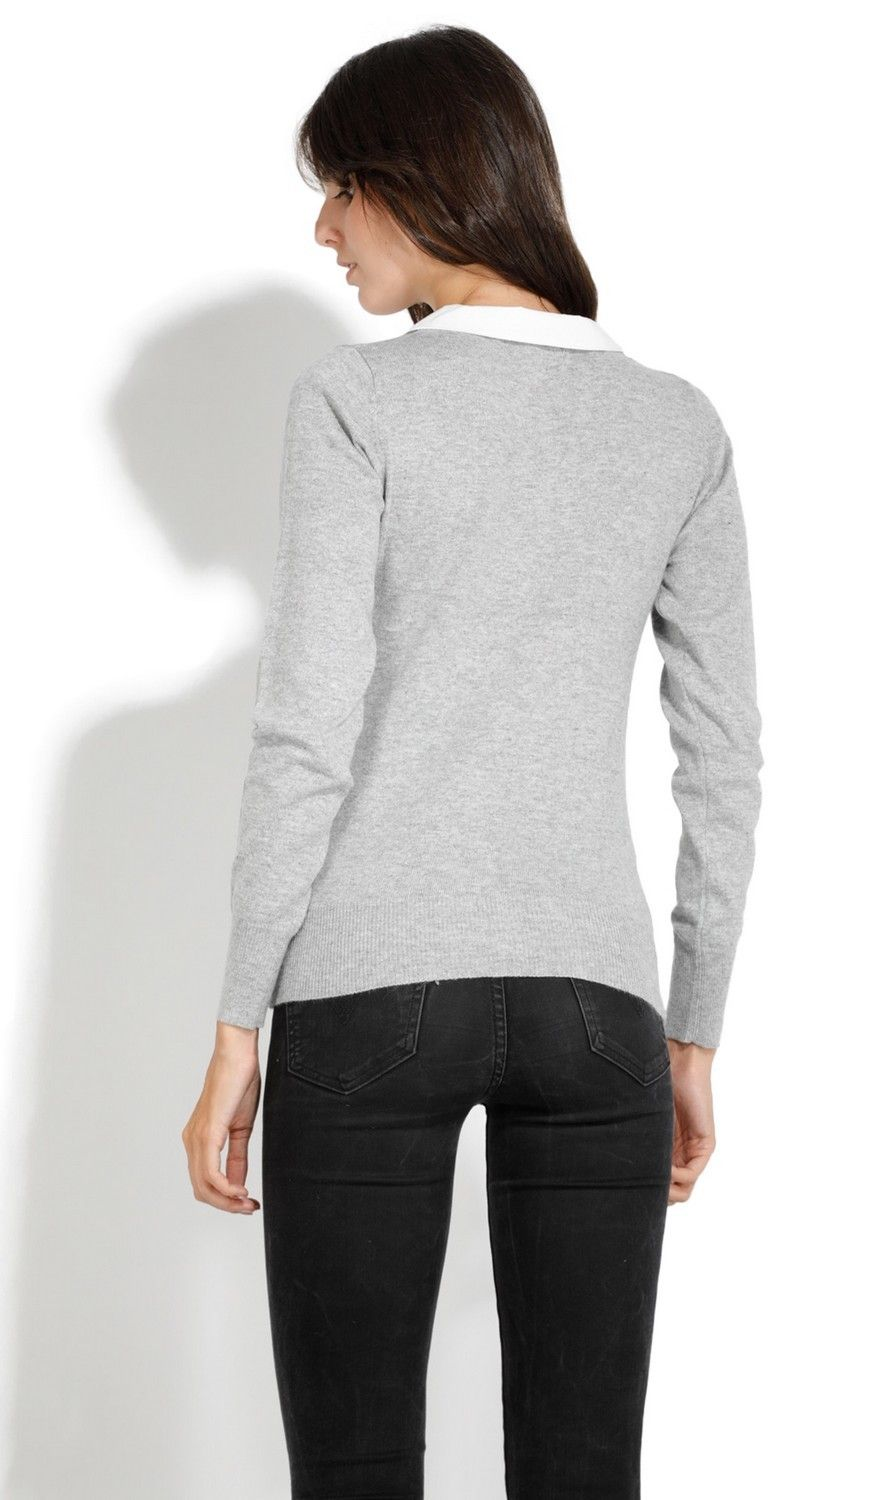 Assuili Buttoned Peter Pan Collar Sweater in Grey